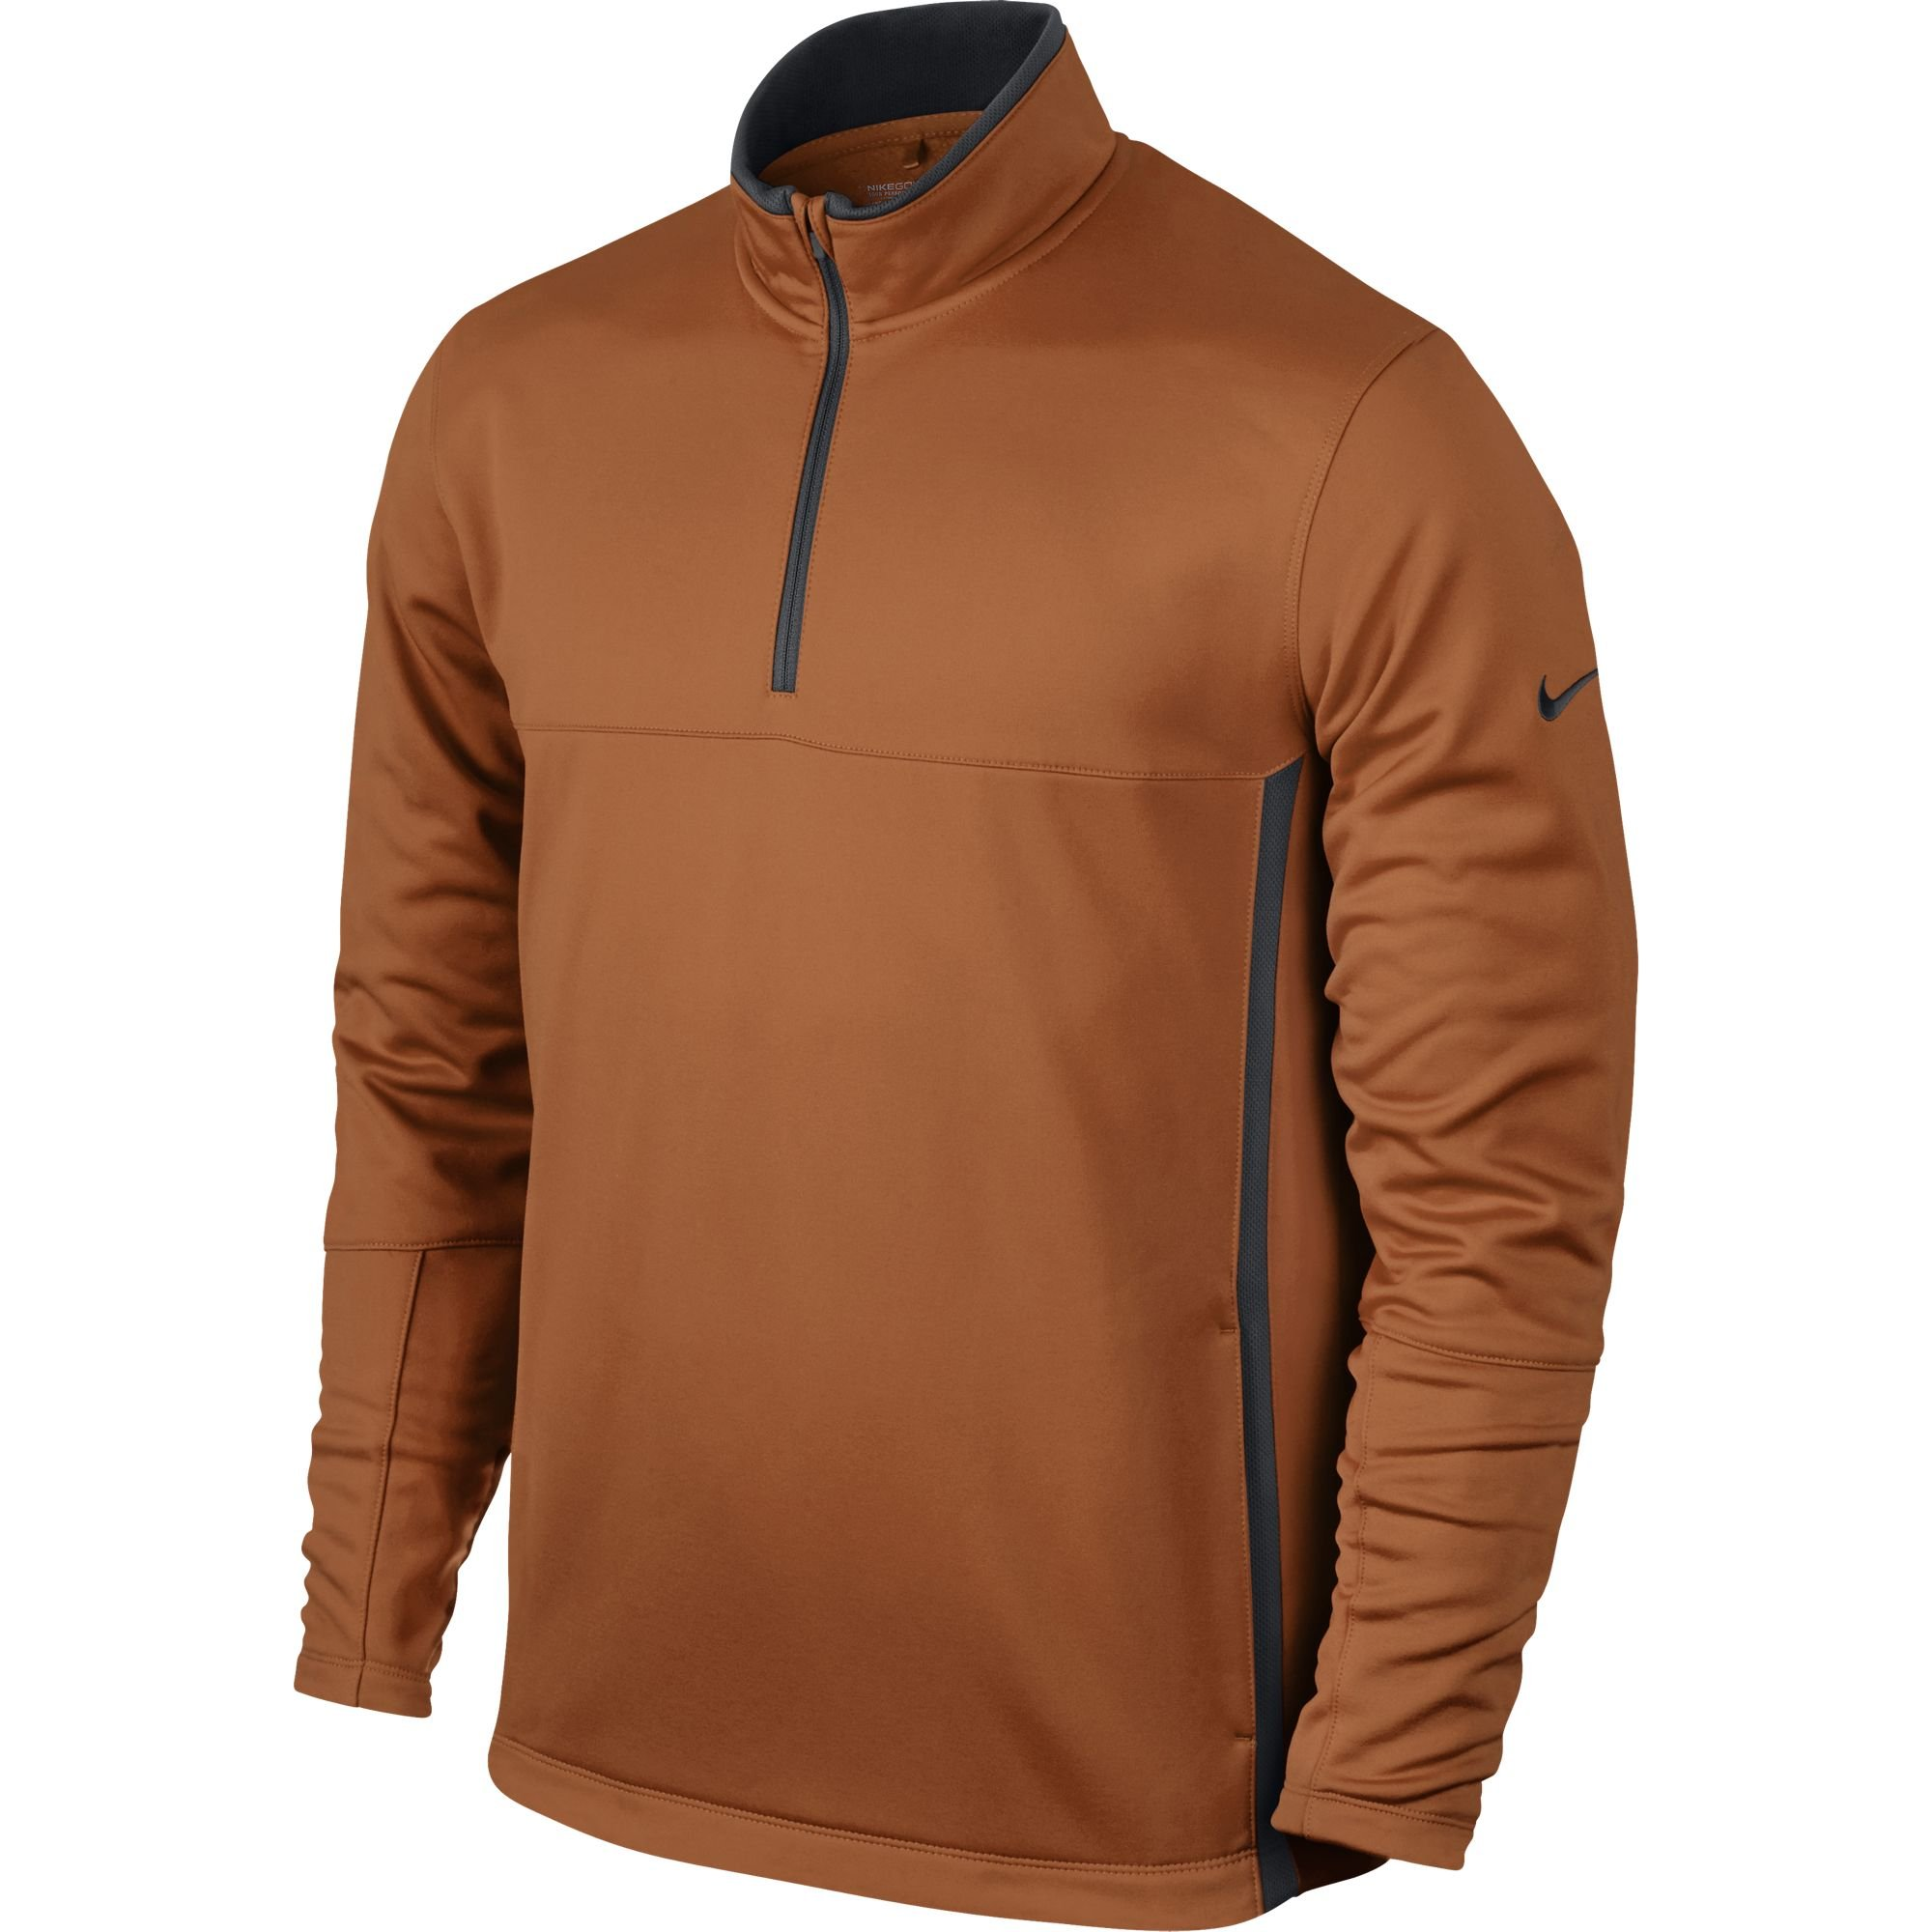 NIKE Men's Therma-FIT Cover-Up Jacket, Desert Orange/Dark Grey/Anthracite, Medium